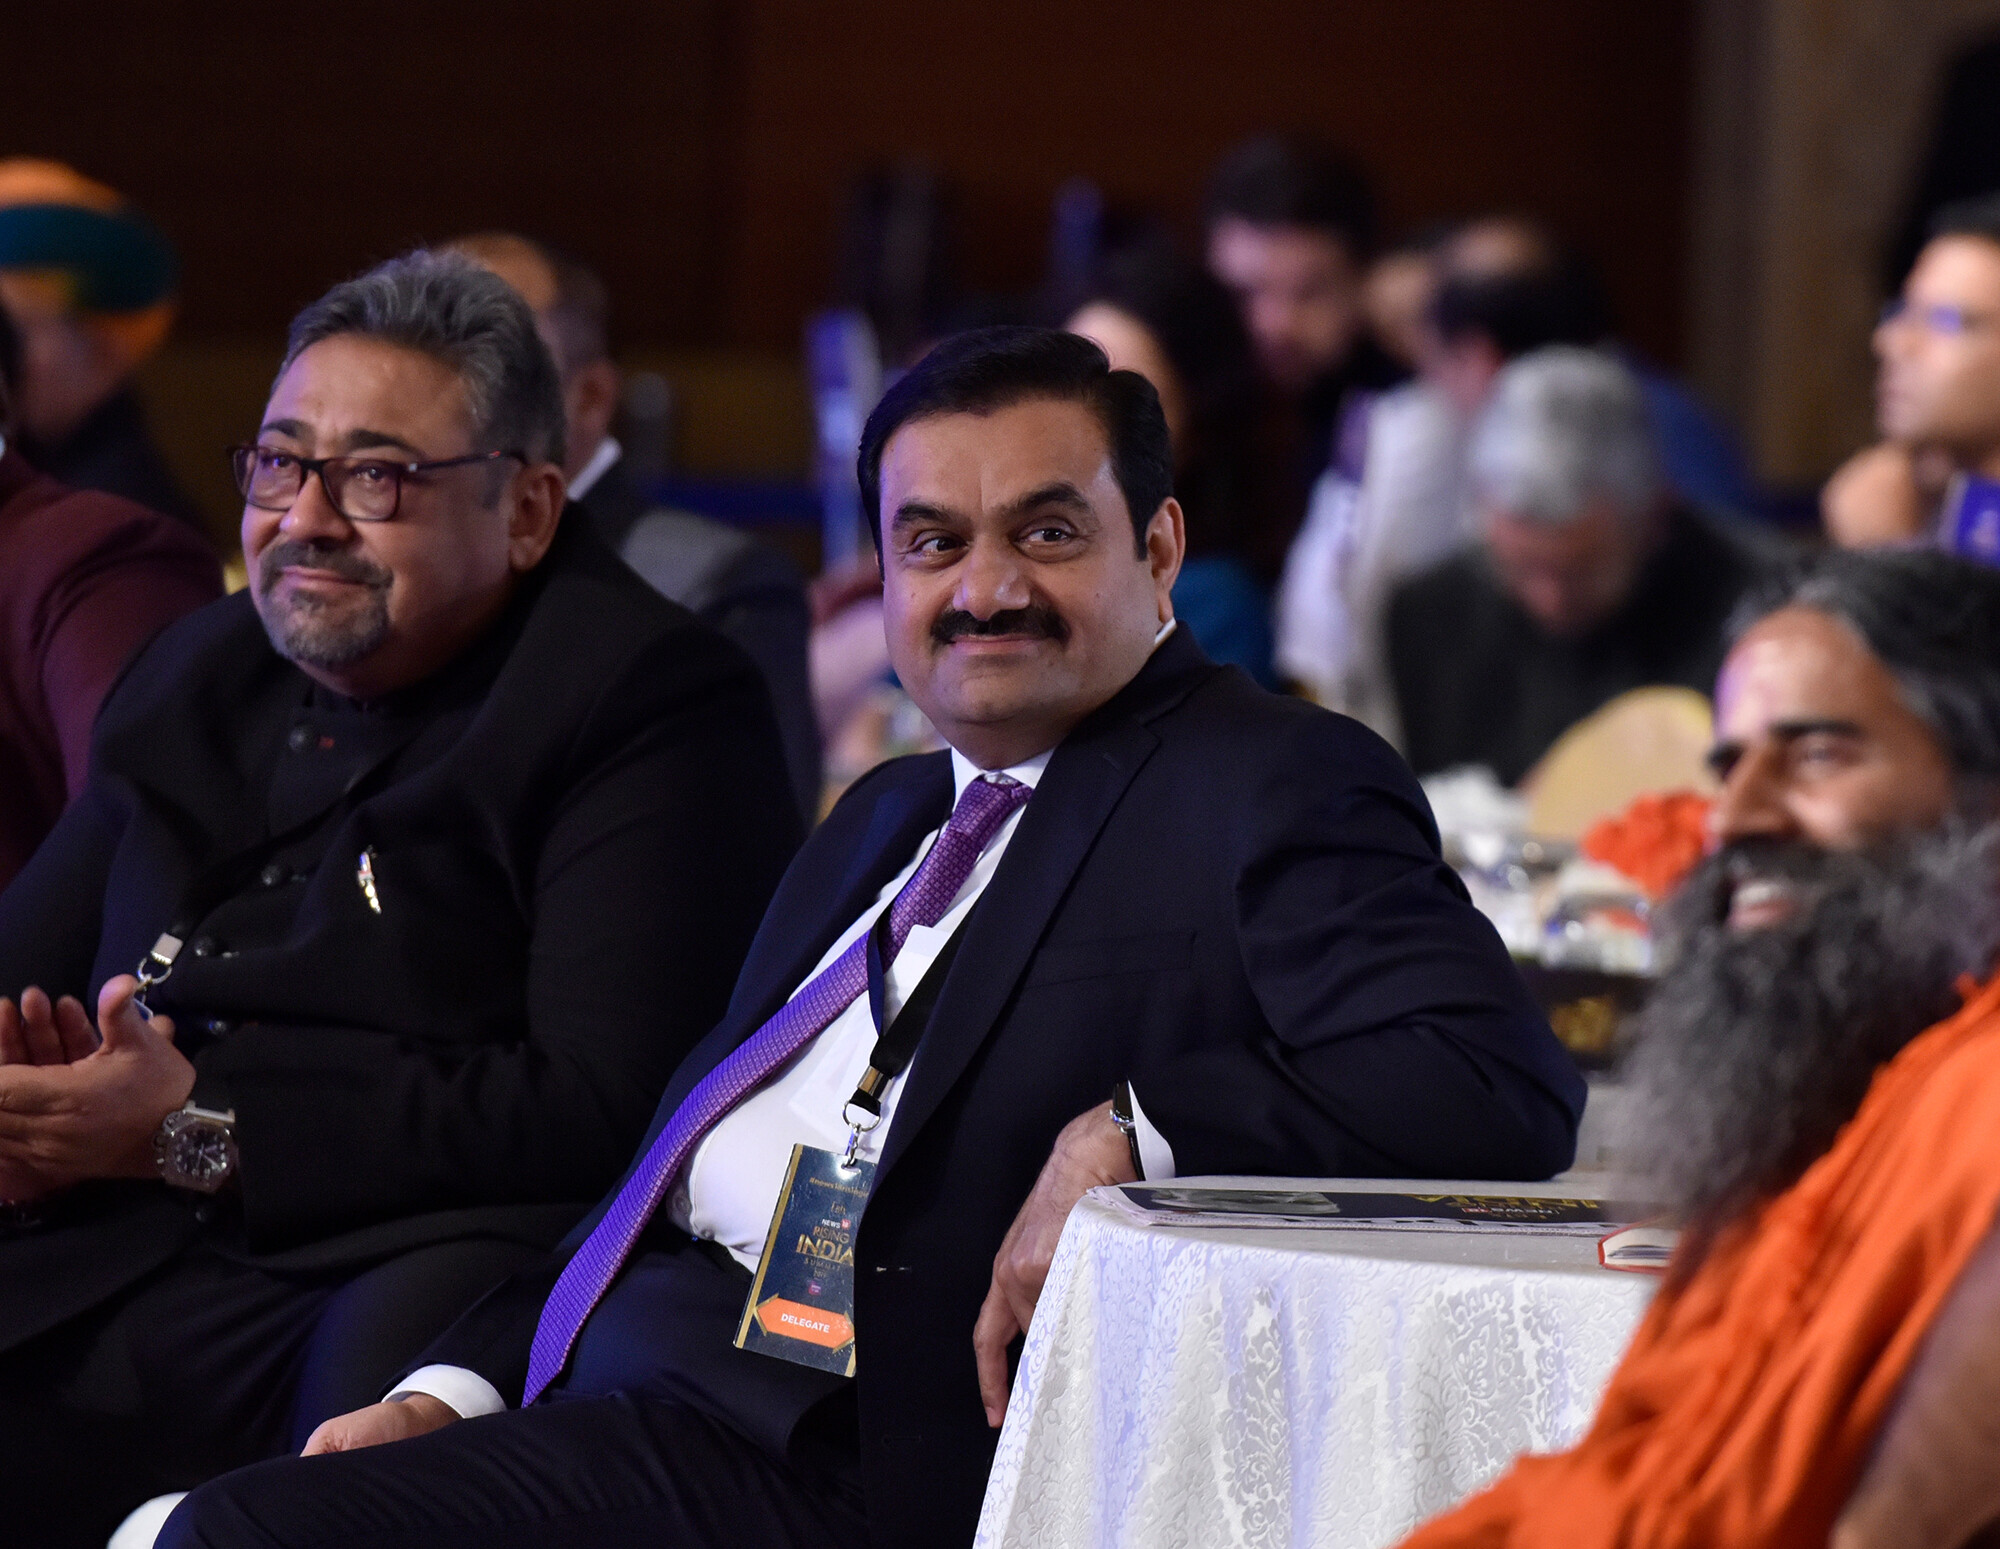 India's billionaires got richer while coronavirus pushed millions of vulnerable people into poverty